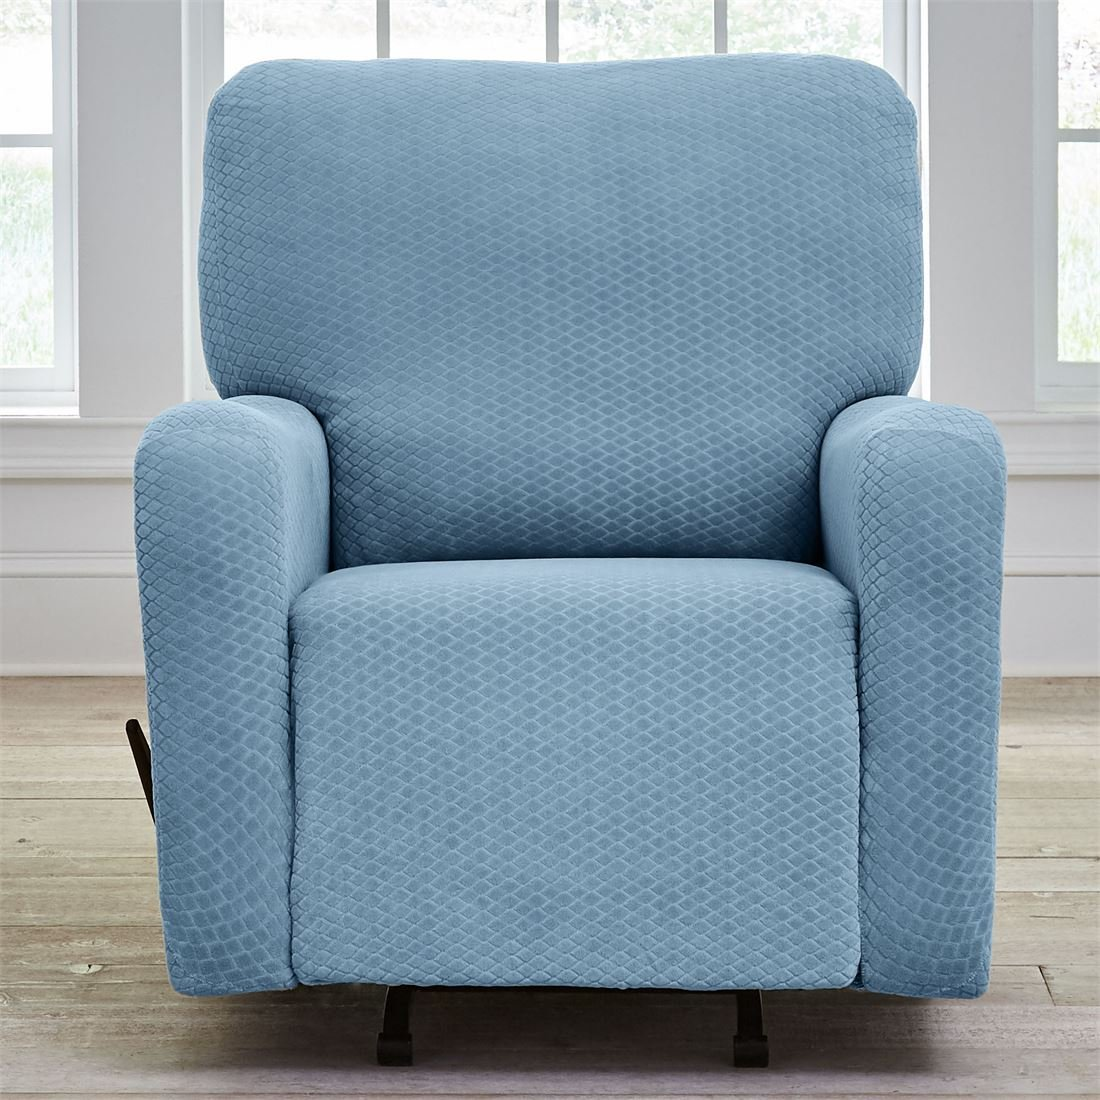 BrylaneHome Bh Studio Stretch Diamond Recliner Slipcover (Light Blue,0)